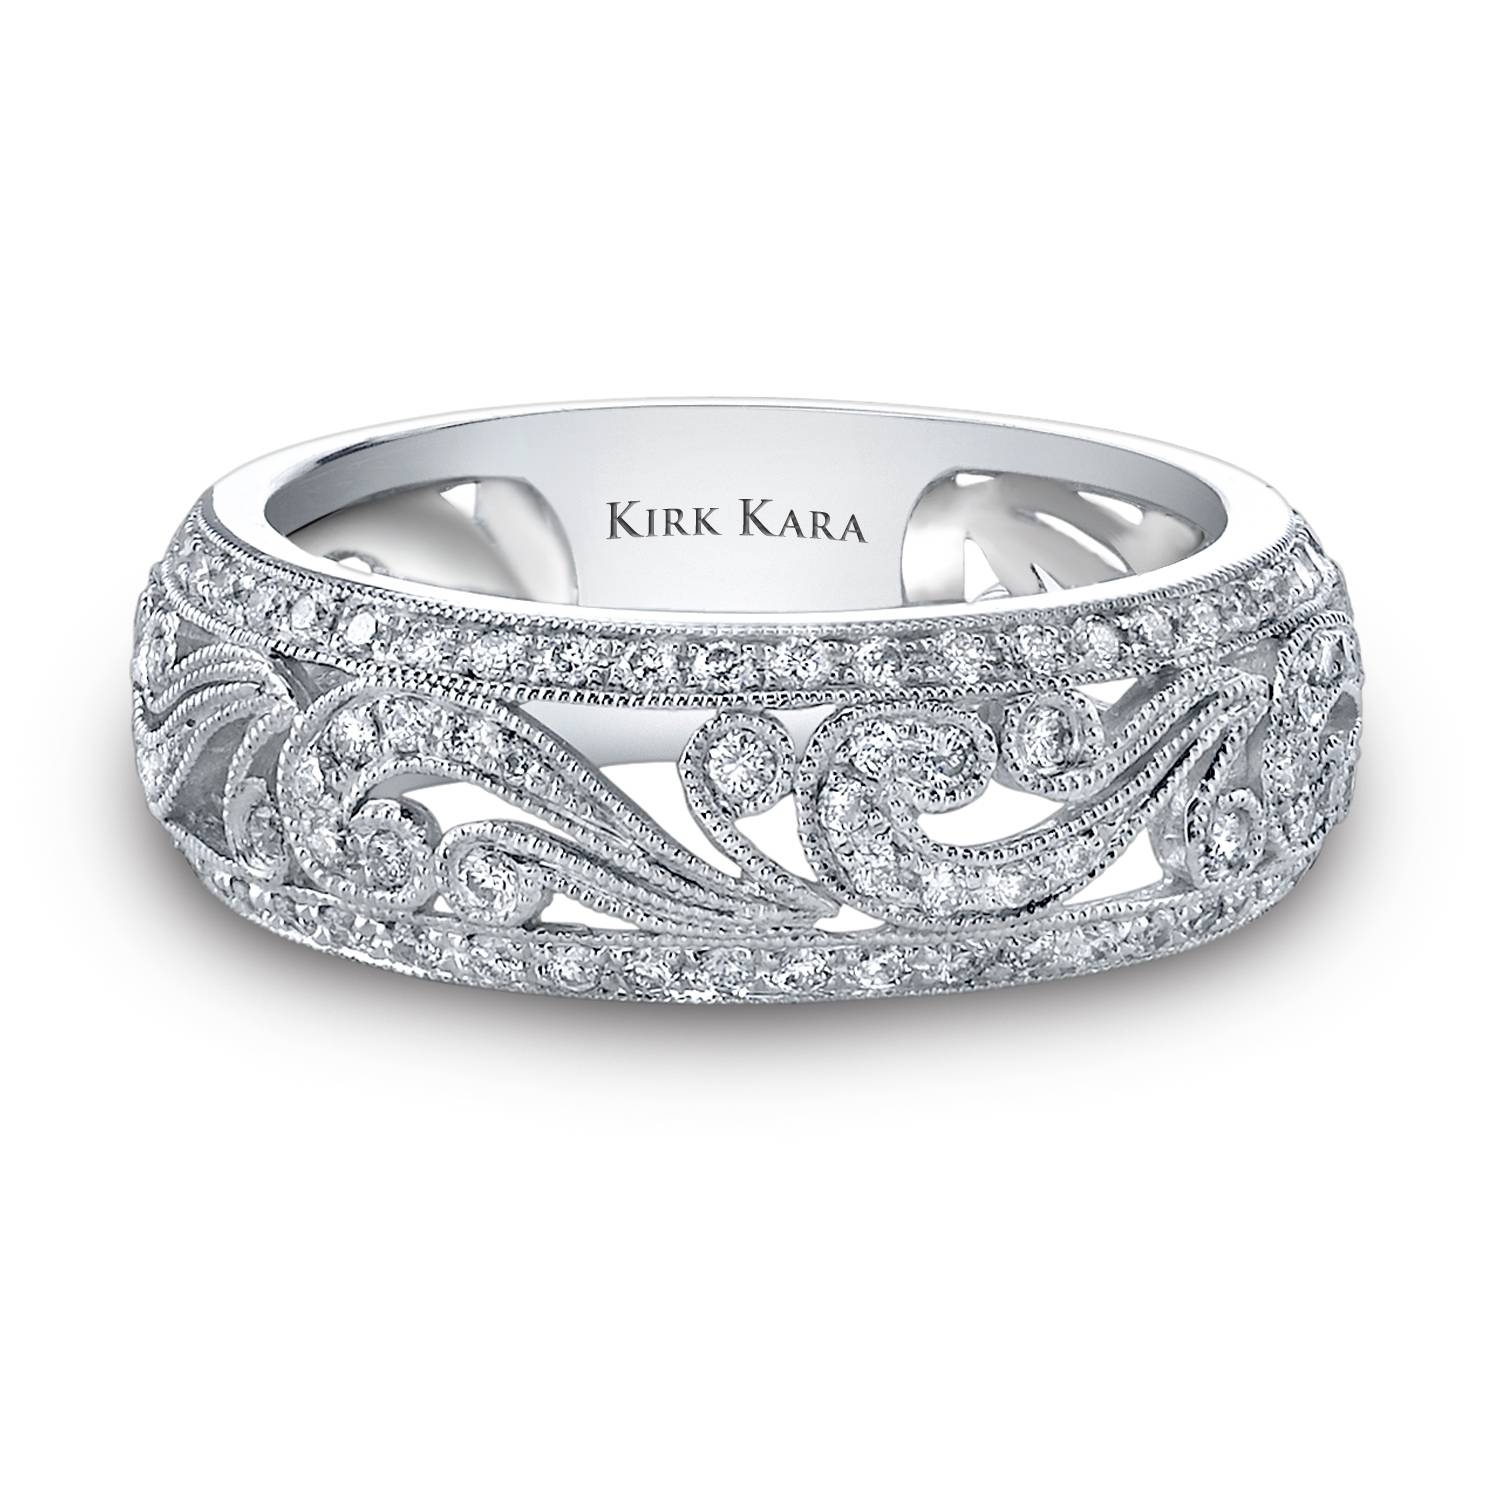 Wedding Band Women: 15 Best Of Vintage Women's Wedding Bands